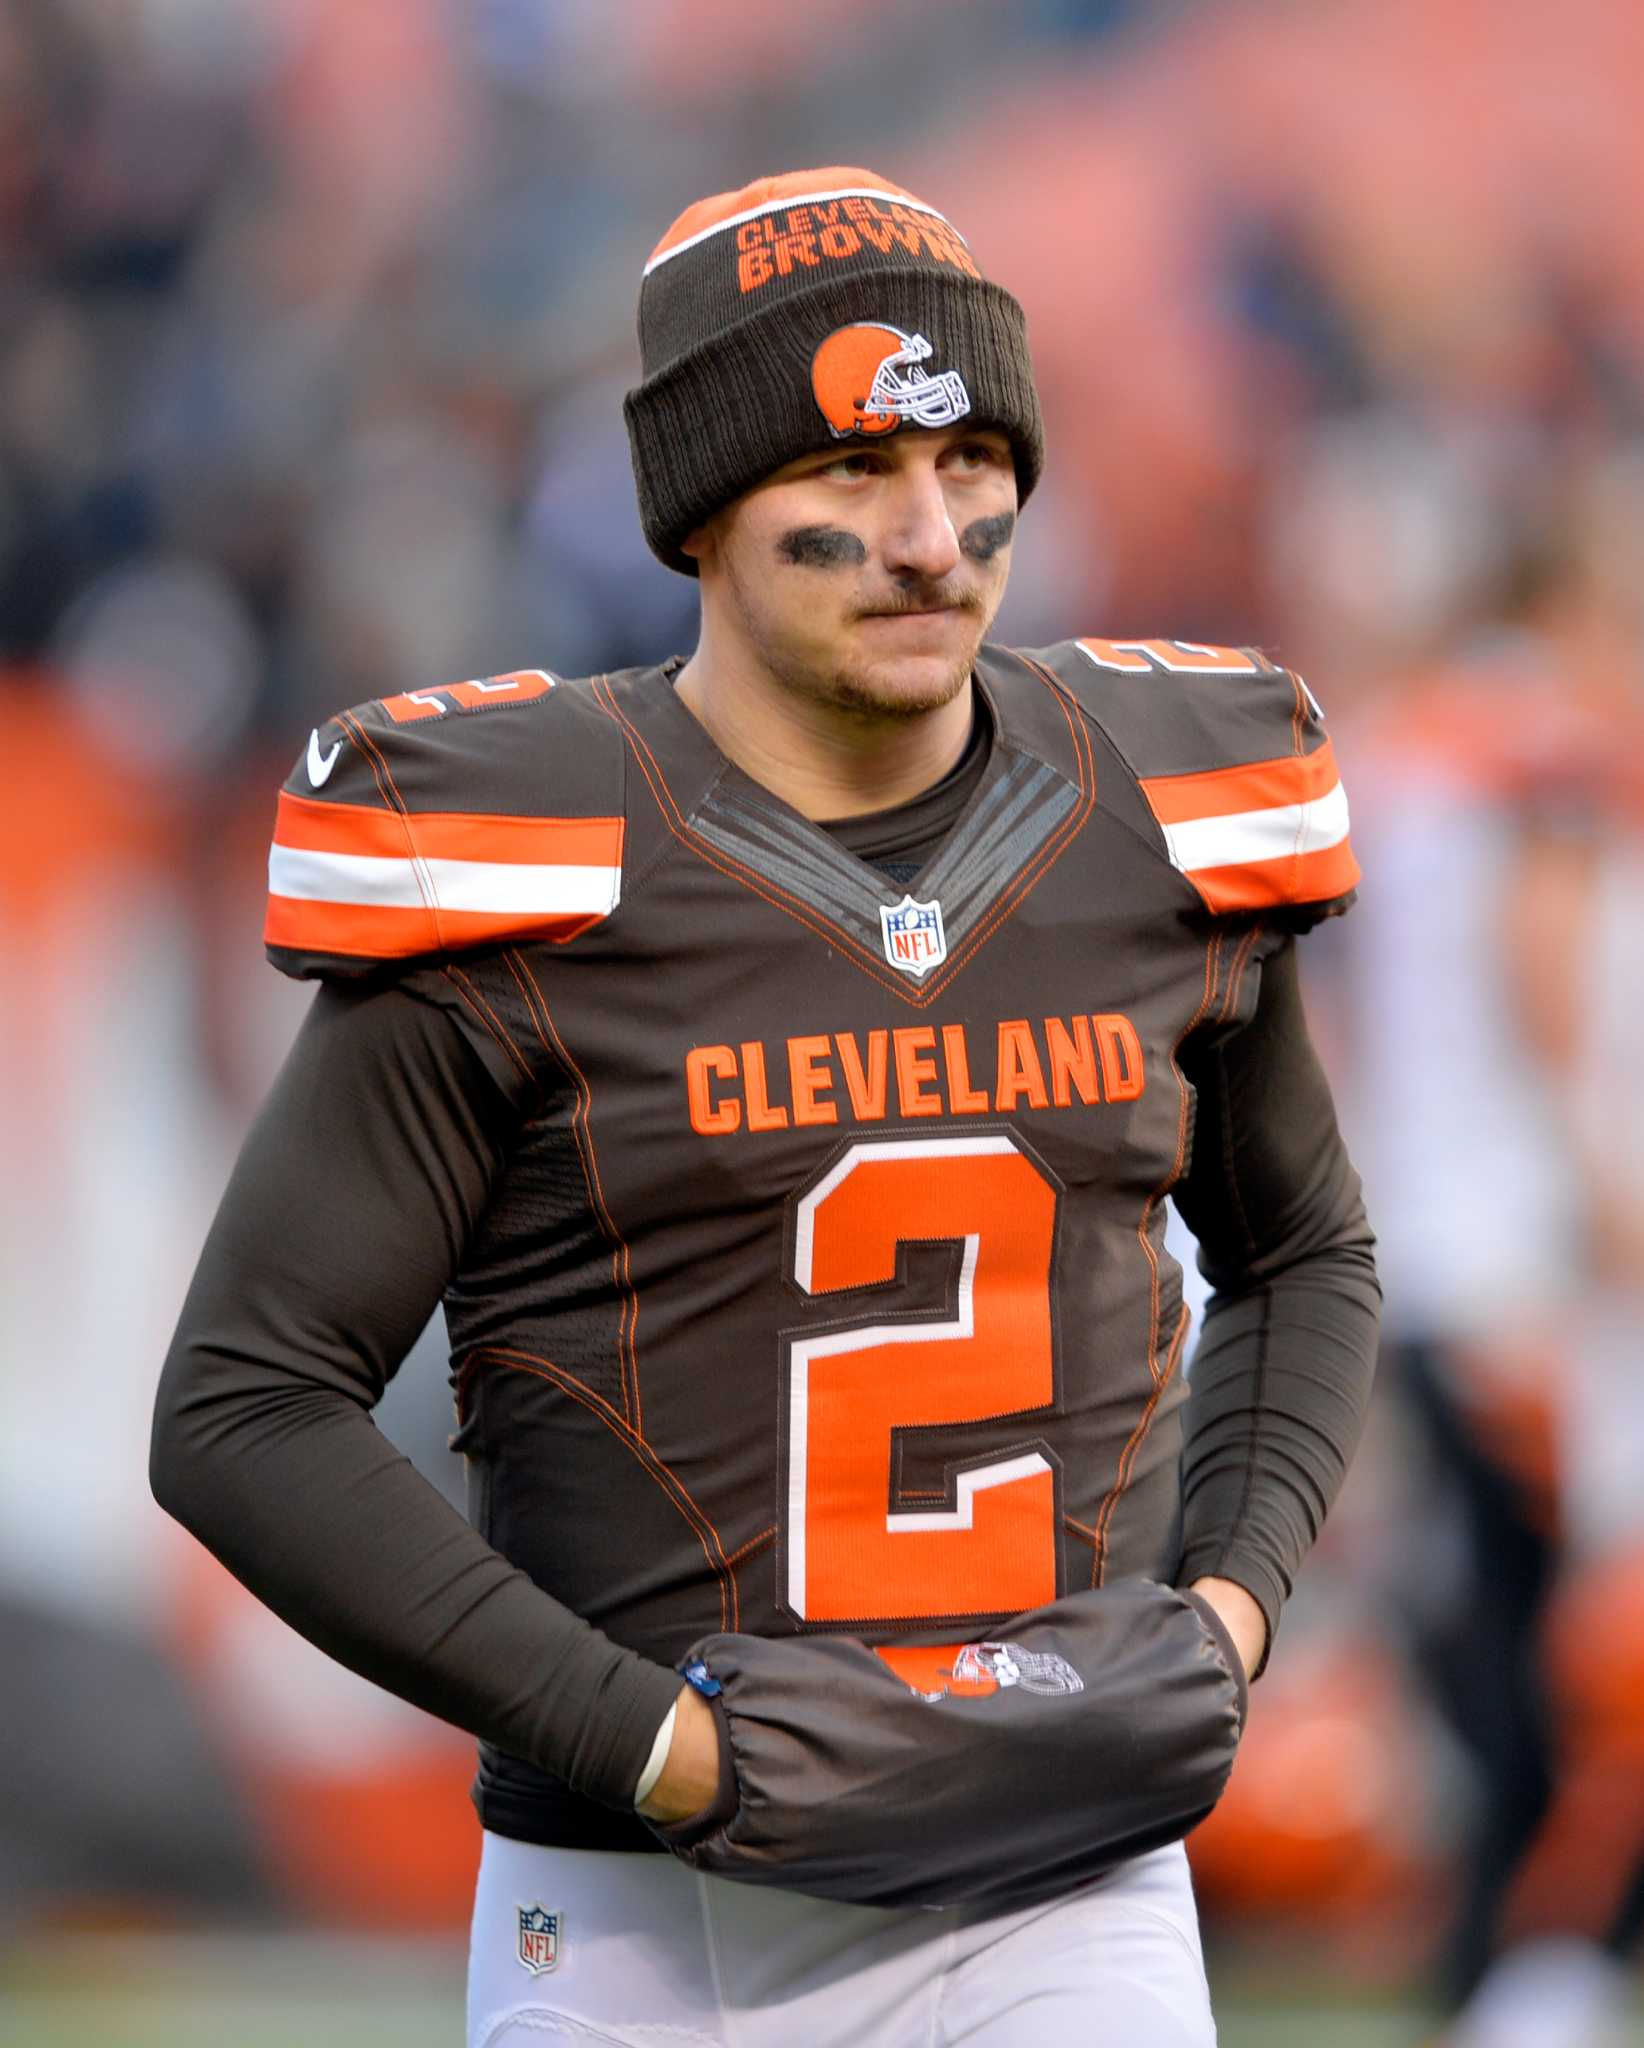 b0ffc7c8c4d Johnny Benched again Johnny Starter. Browns call on Manziel after QB lost  his job due to off-field antics